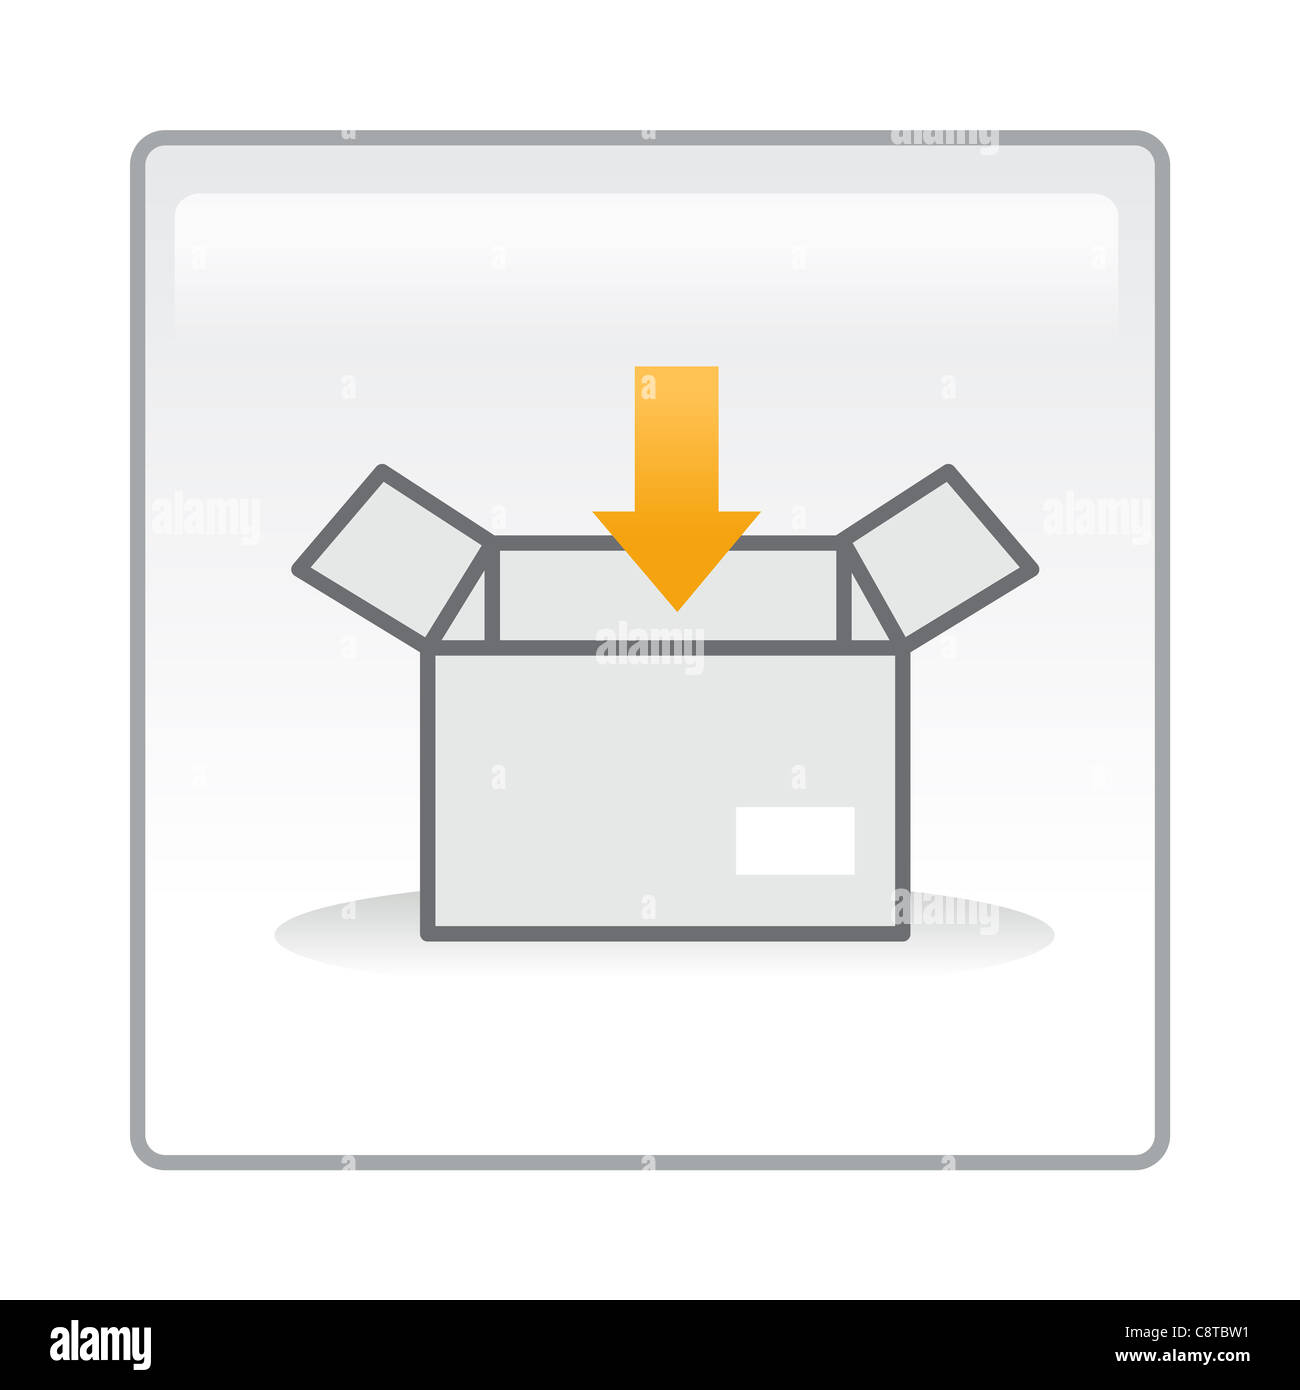 Illustration of box with arrow sign - Stock Image